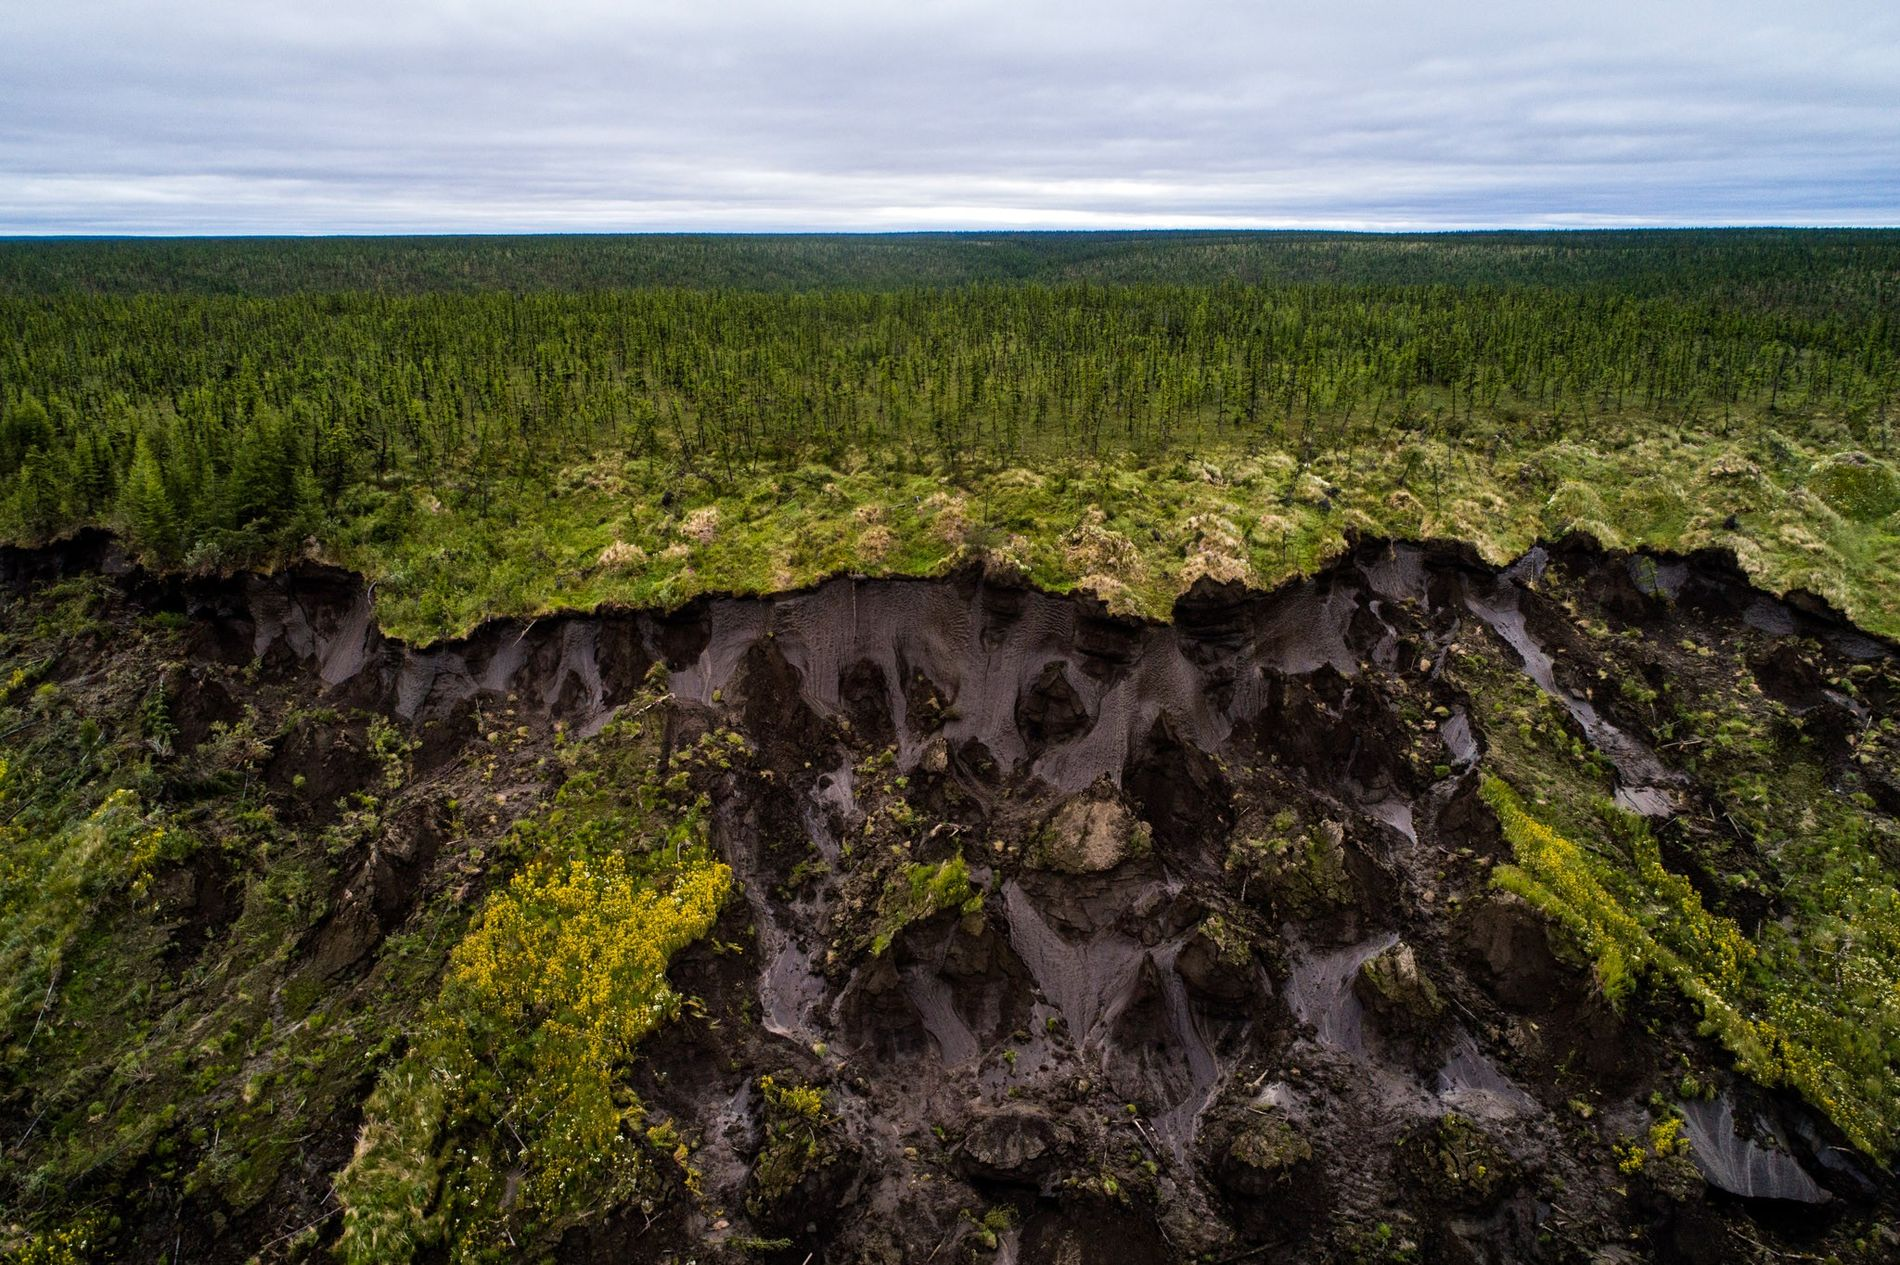 Ground collapses at Duvanny Yar, a permafrost megaslump along the Kolyma River in northern Siberia. New research suggests that some land in Arctic Alaska and Russia may no longer freeze at all. This constantly moving landslide, driven by erosion and sped up by warming temperatures, is an important research site for scientists, who use it to track what happens as carbon-rich land that has been frozen for centuries begins to thaw.